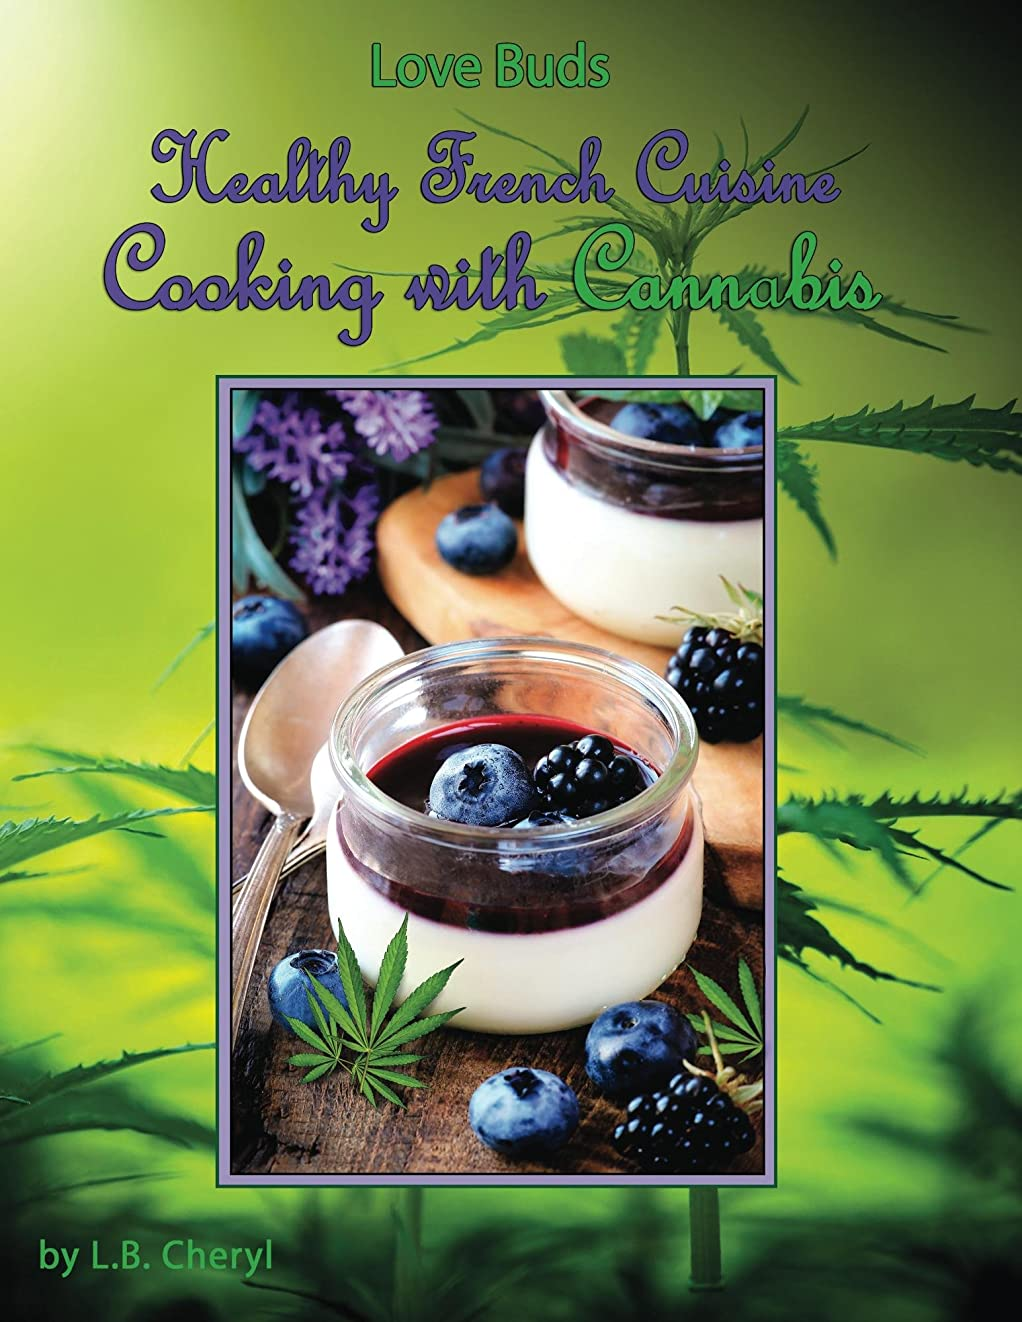 Love Buds Healthy French Cuisine Cooking with Cannabis: Sugar-free, Gluten Free, Fat- Free, Dairy Free, Meat, Fish, Seafood, Salads, Soups & Desserts (English Edition)